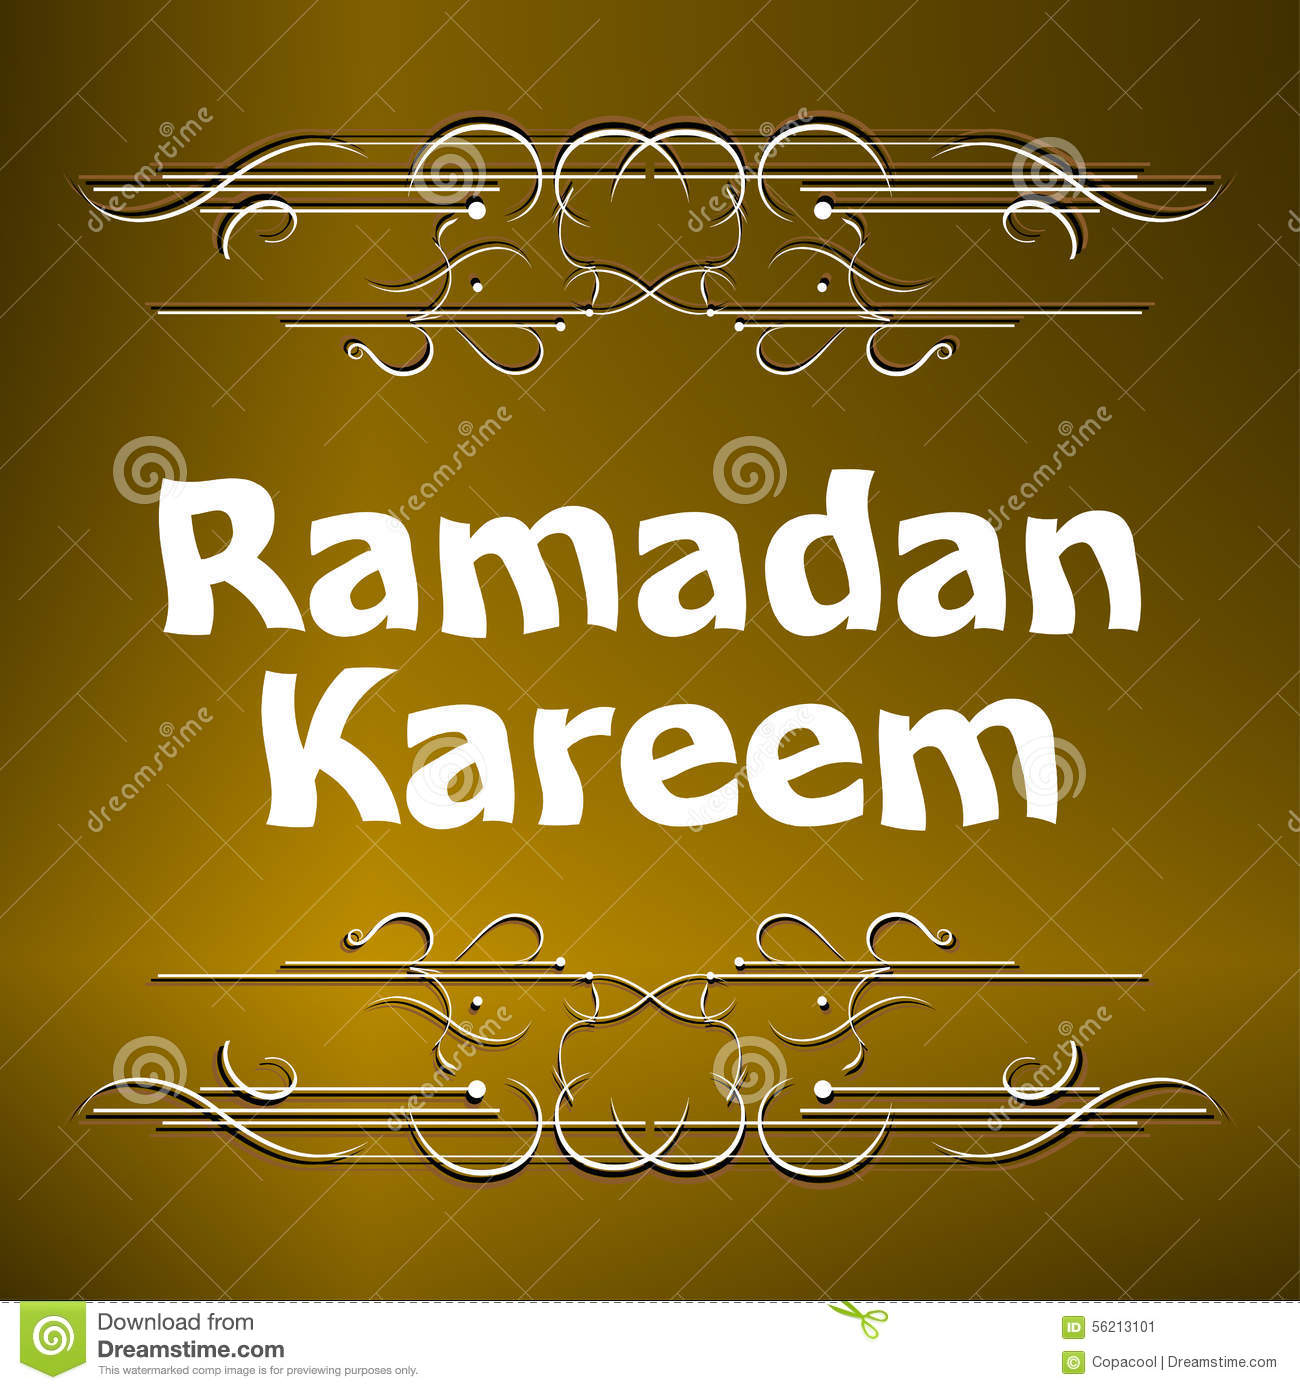 Ramadan kareem gold lettering star new moon mockup islamic greeting ramadan kareem gold lettering star new moon mockup islamic greeting card kristyandbryce Image collections